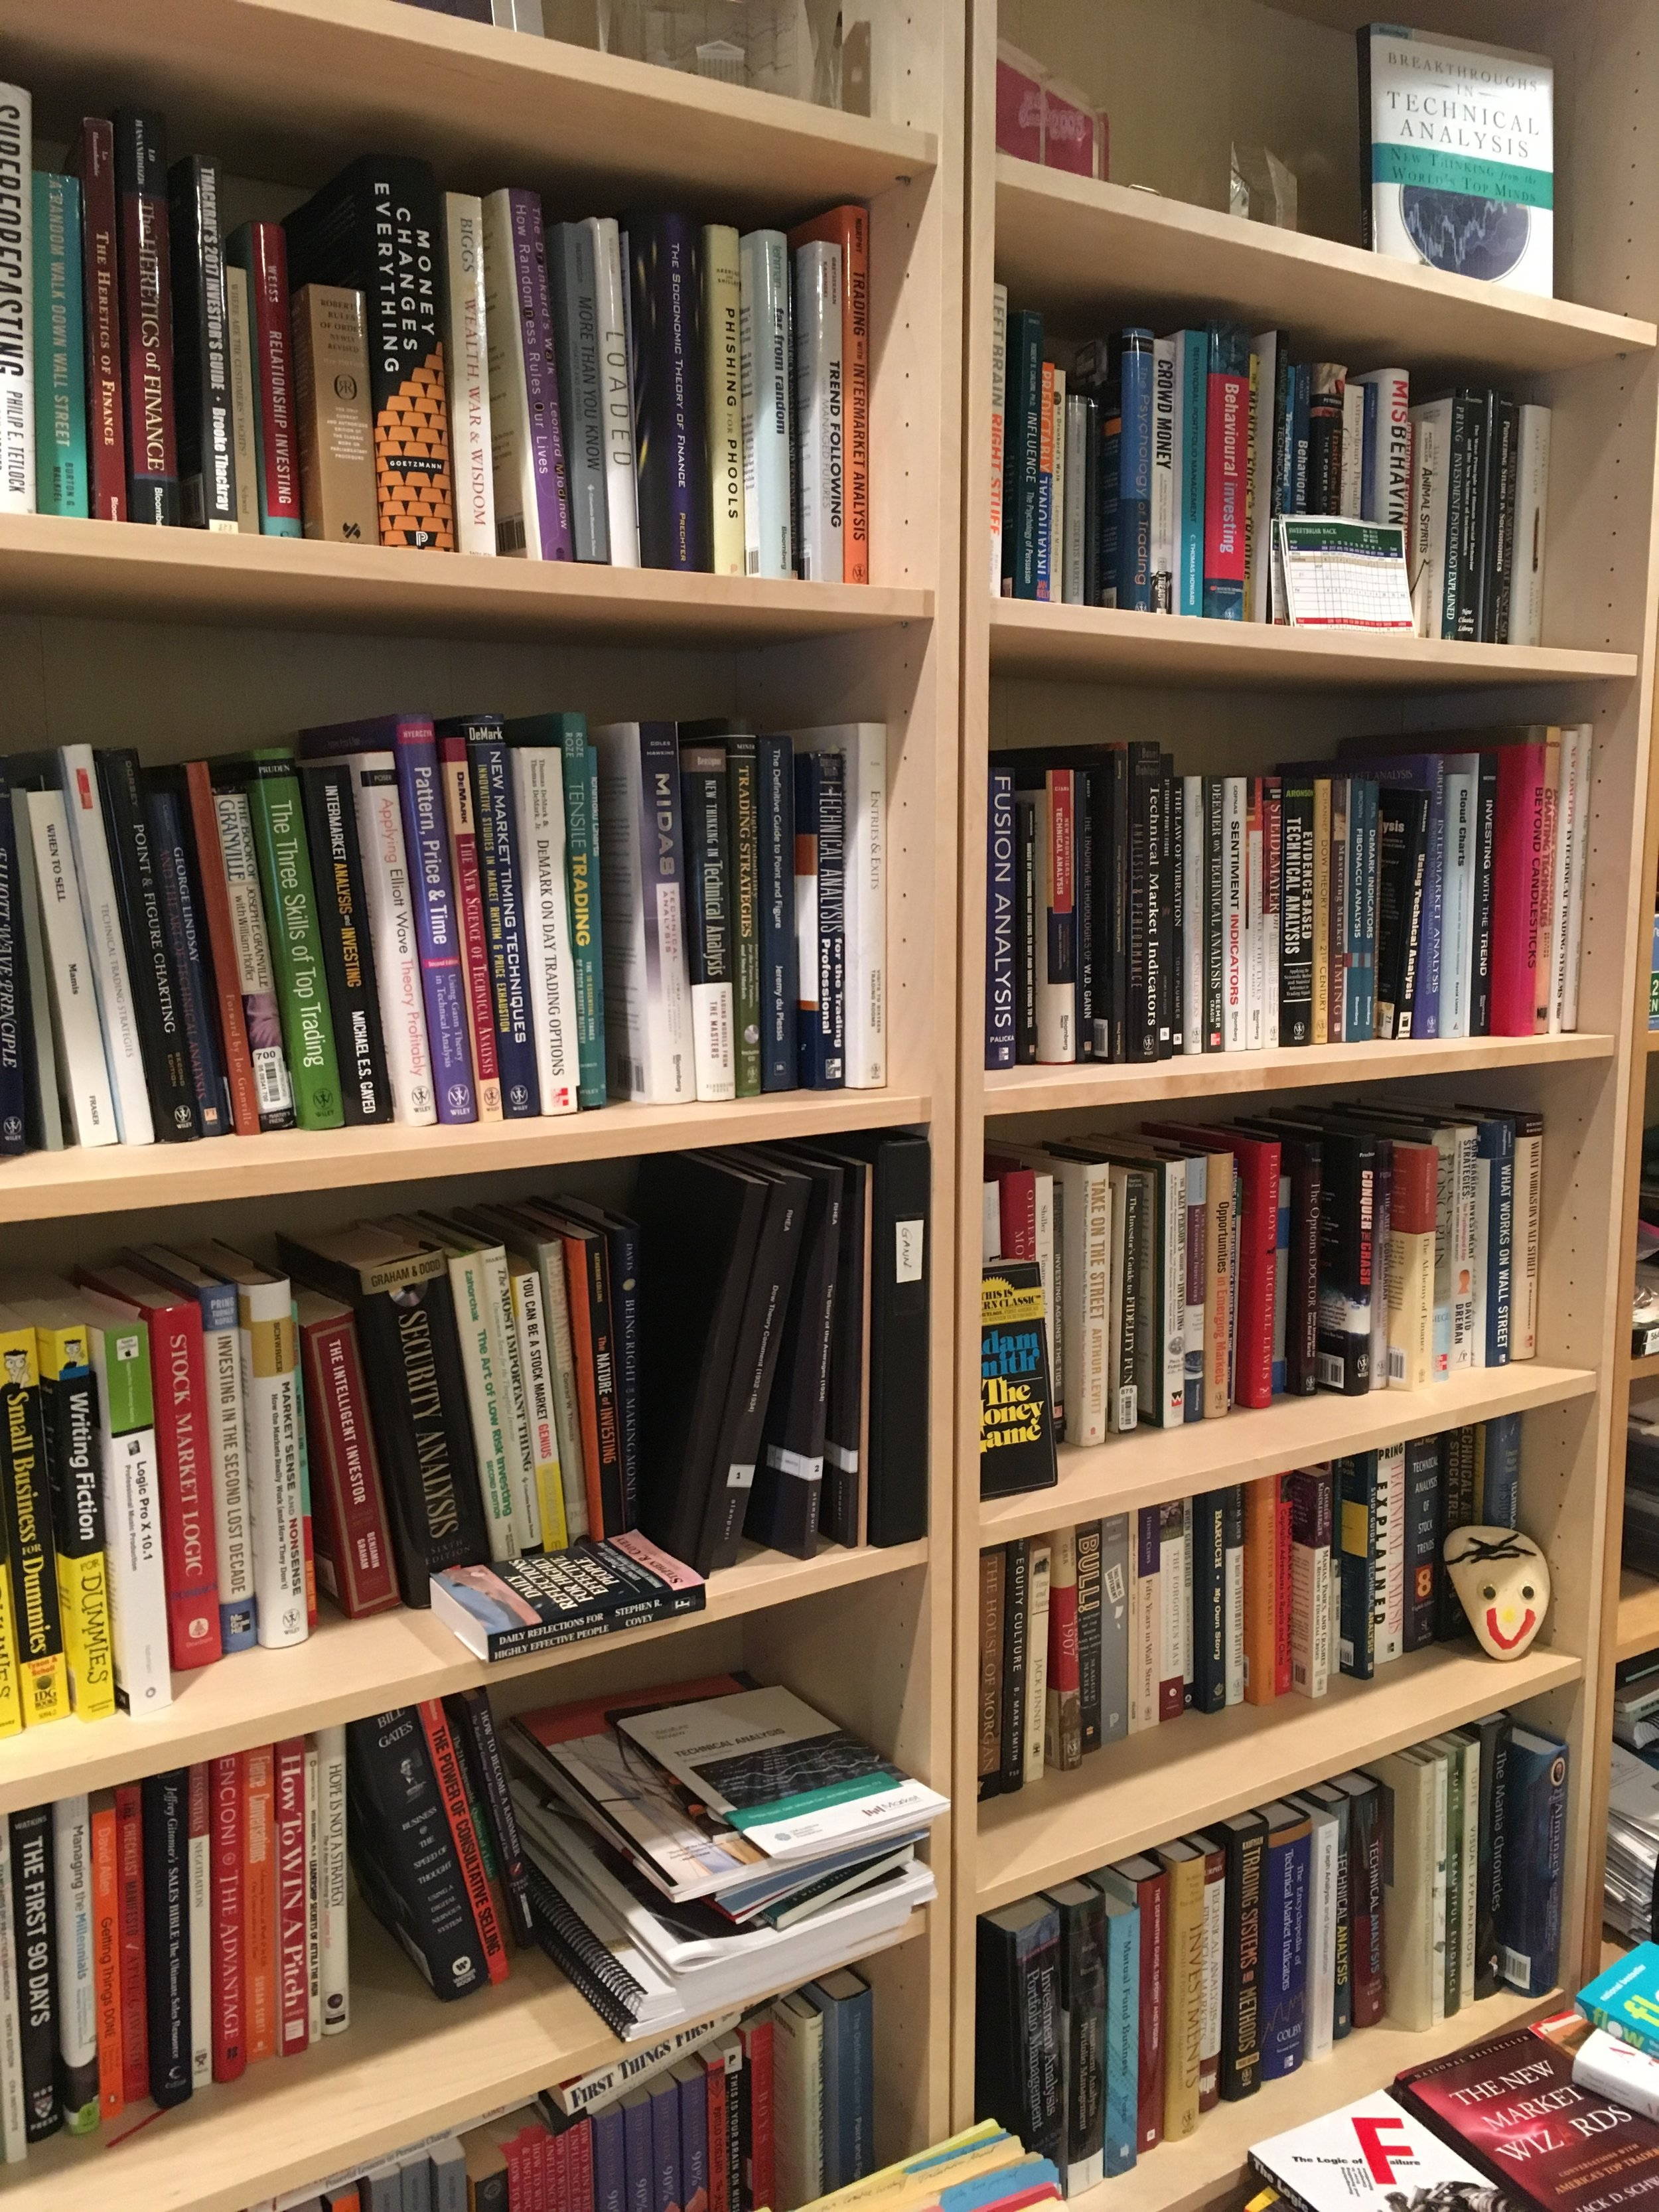 Two bookshelves full of potential opportunities for growth!